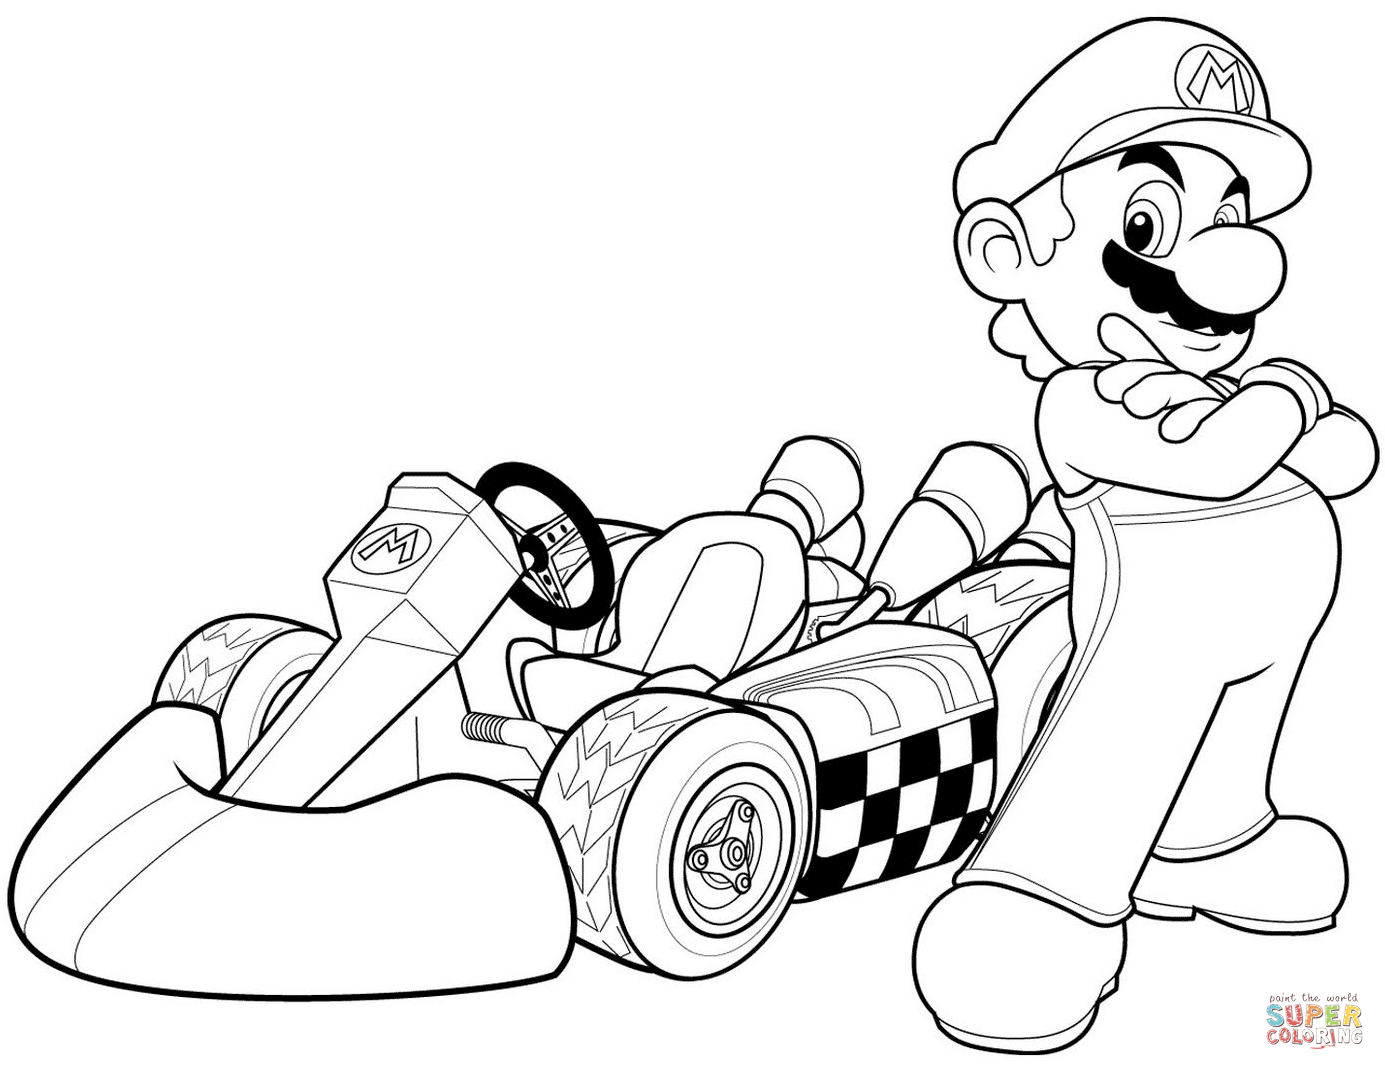 Super Mario Bros Coloring Pages To Print